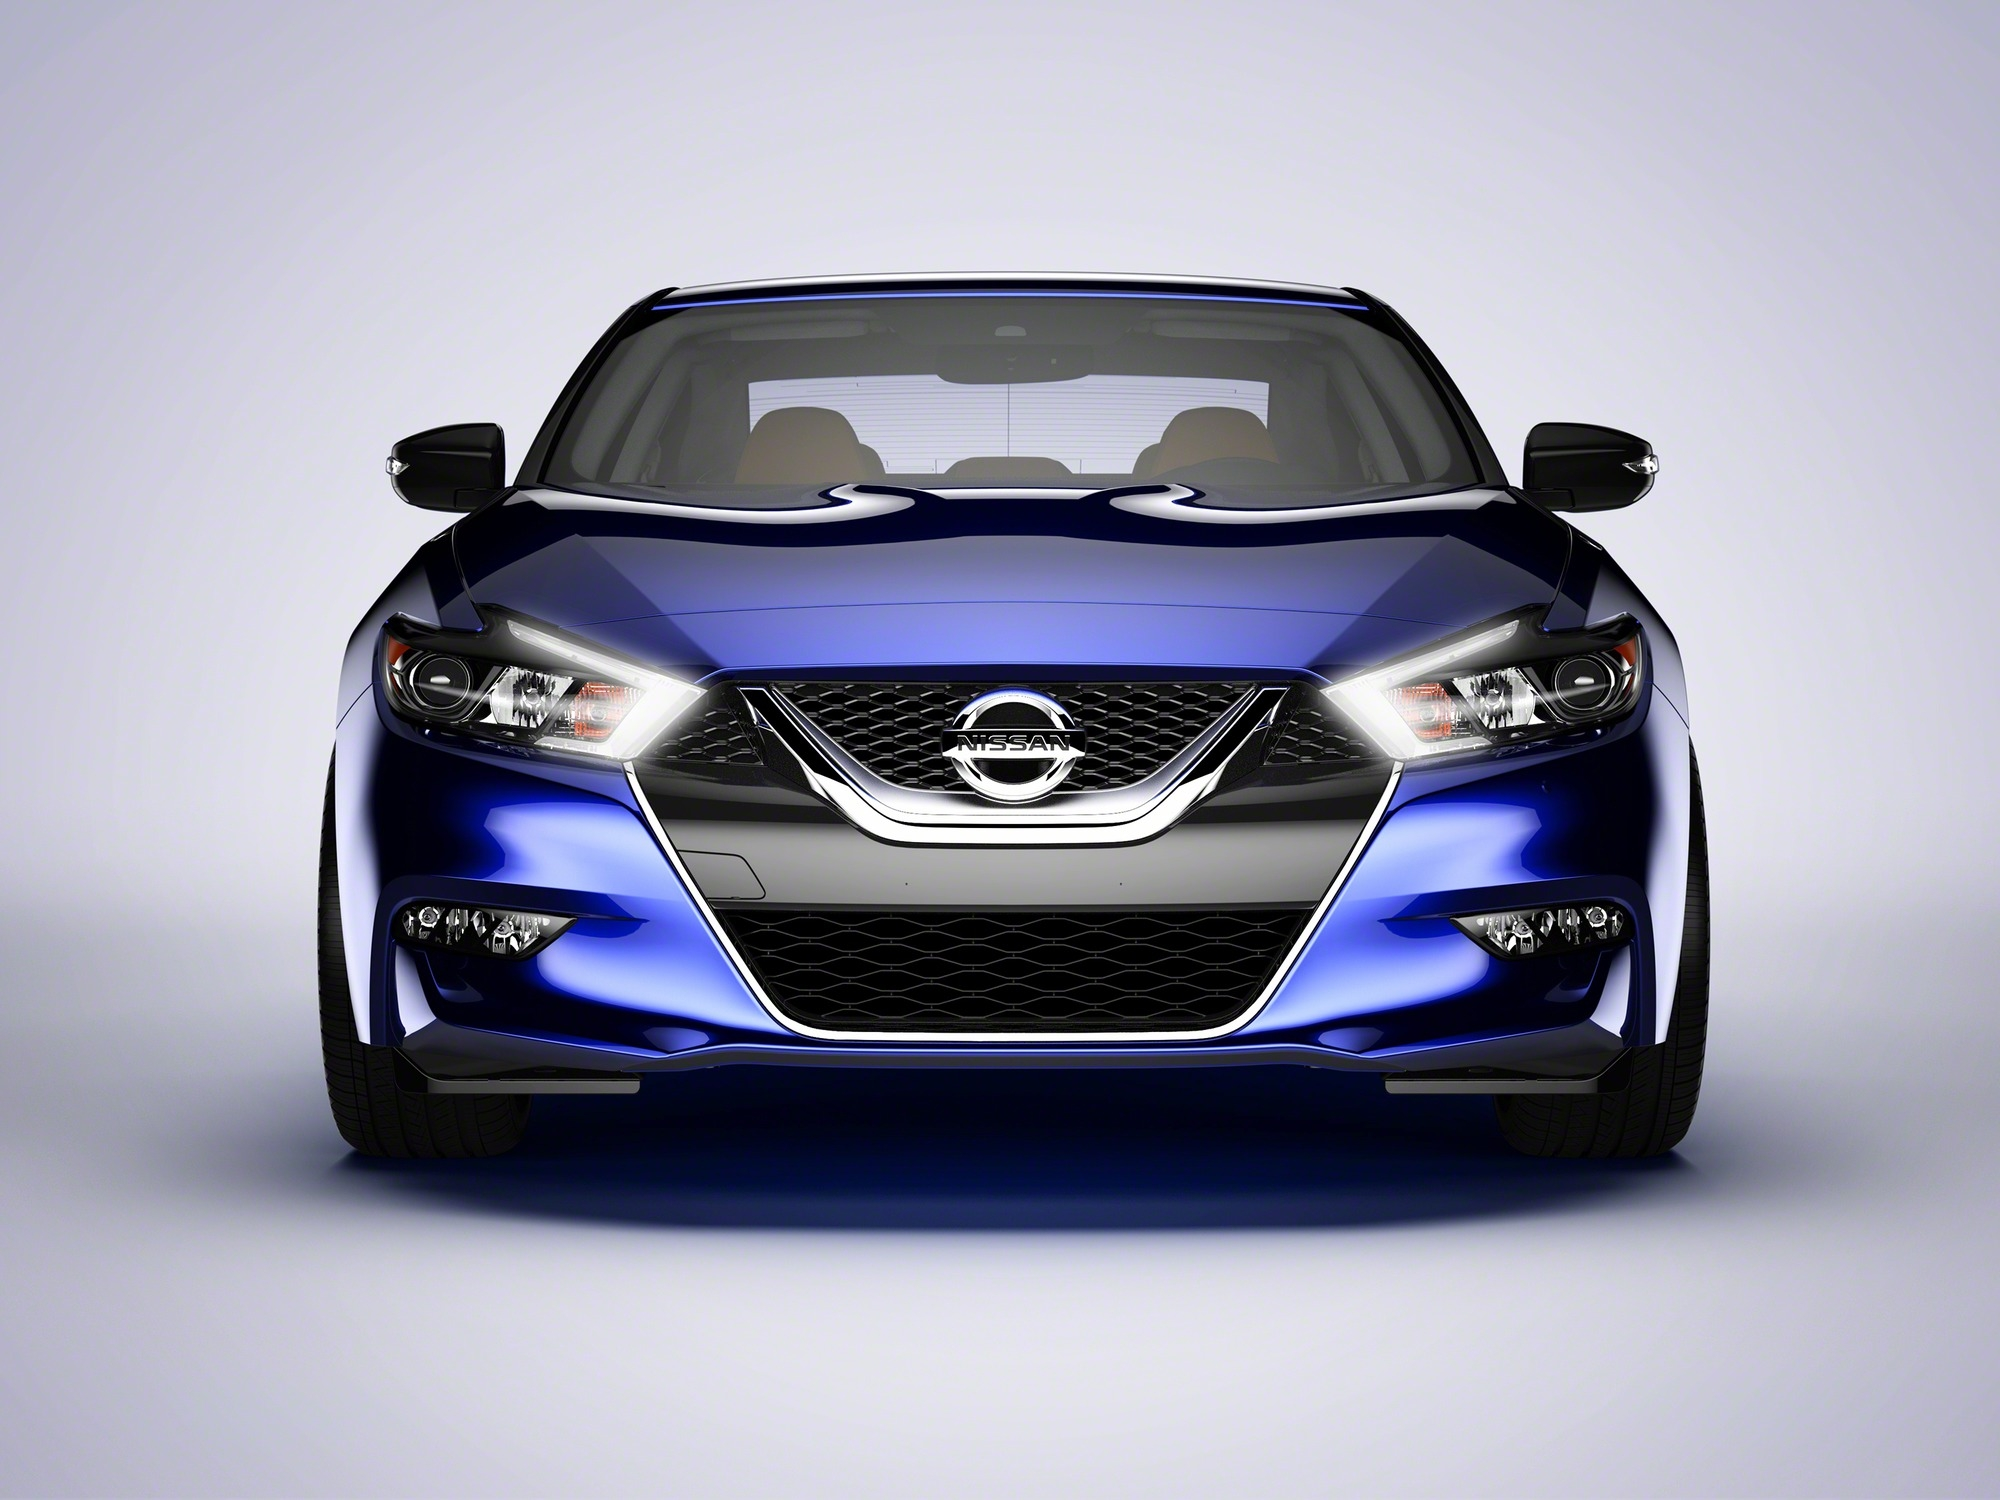 """Created by driving enthusiasts for driving enthusiasts, the dramatically styled 2016 Nissan Maxima looks like nothing else on the road today – and drives like nothing in the segment. The all-new Nissan flagship not only resets Maxima's iconic """"4-Door Sports Car"""" positioning, it sets a new standard for style, performance and technology in the large sedan segment."""